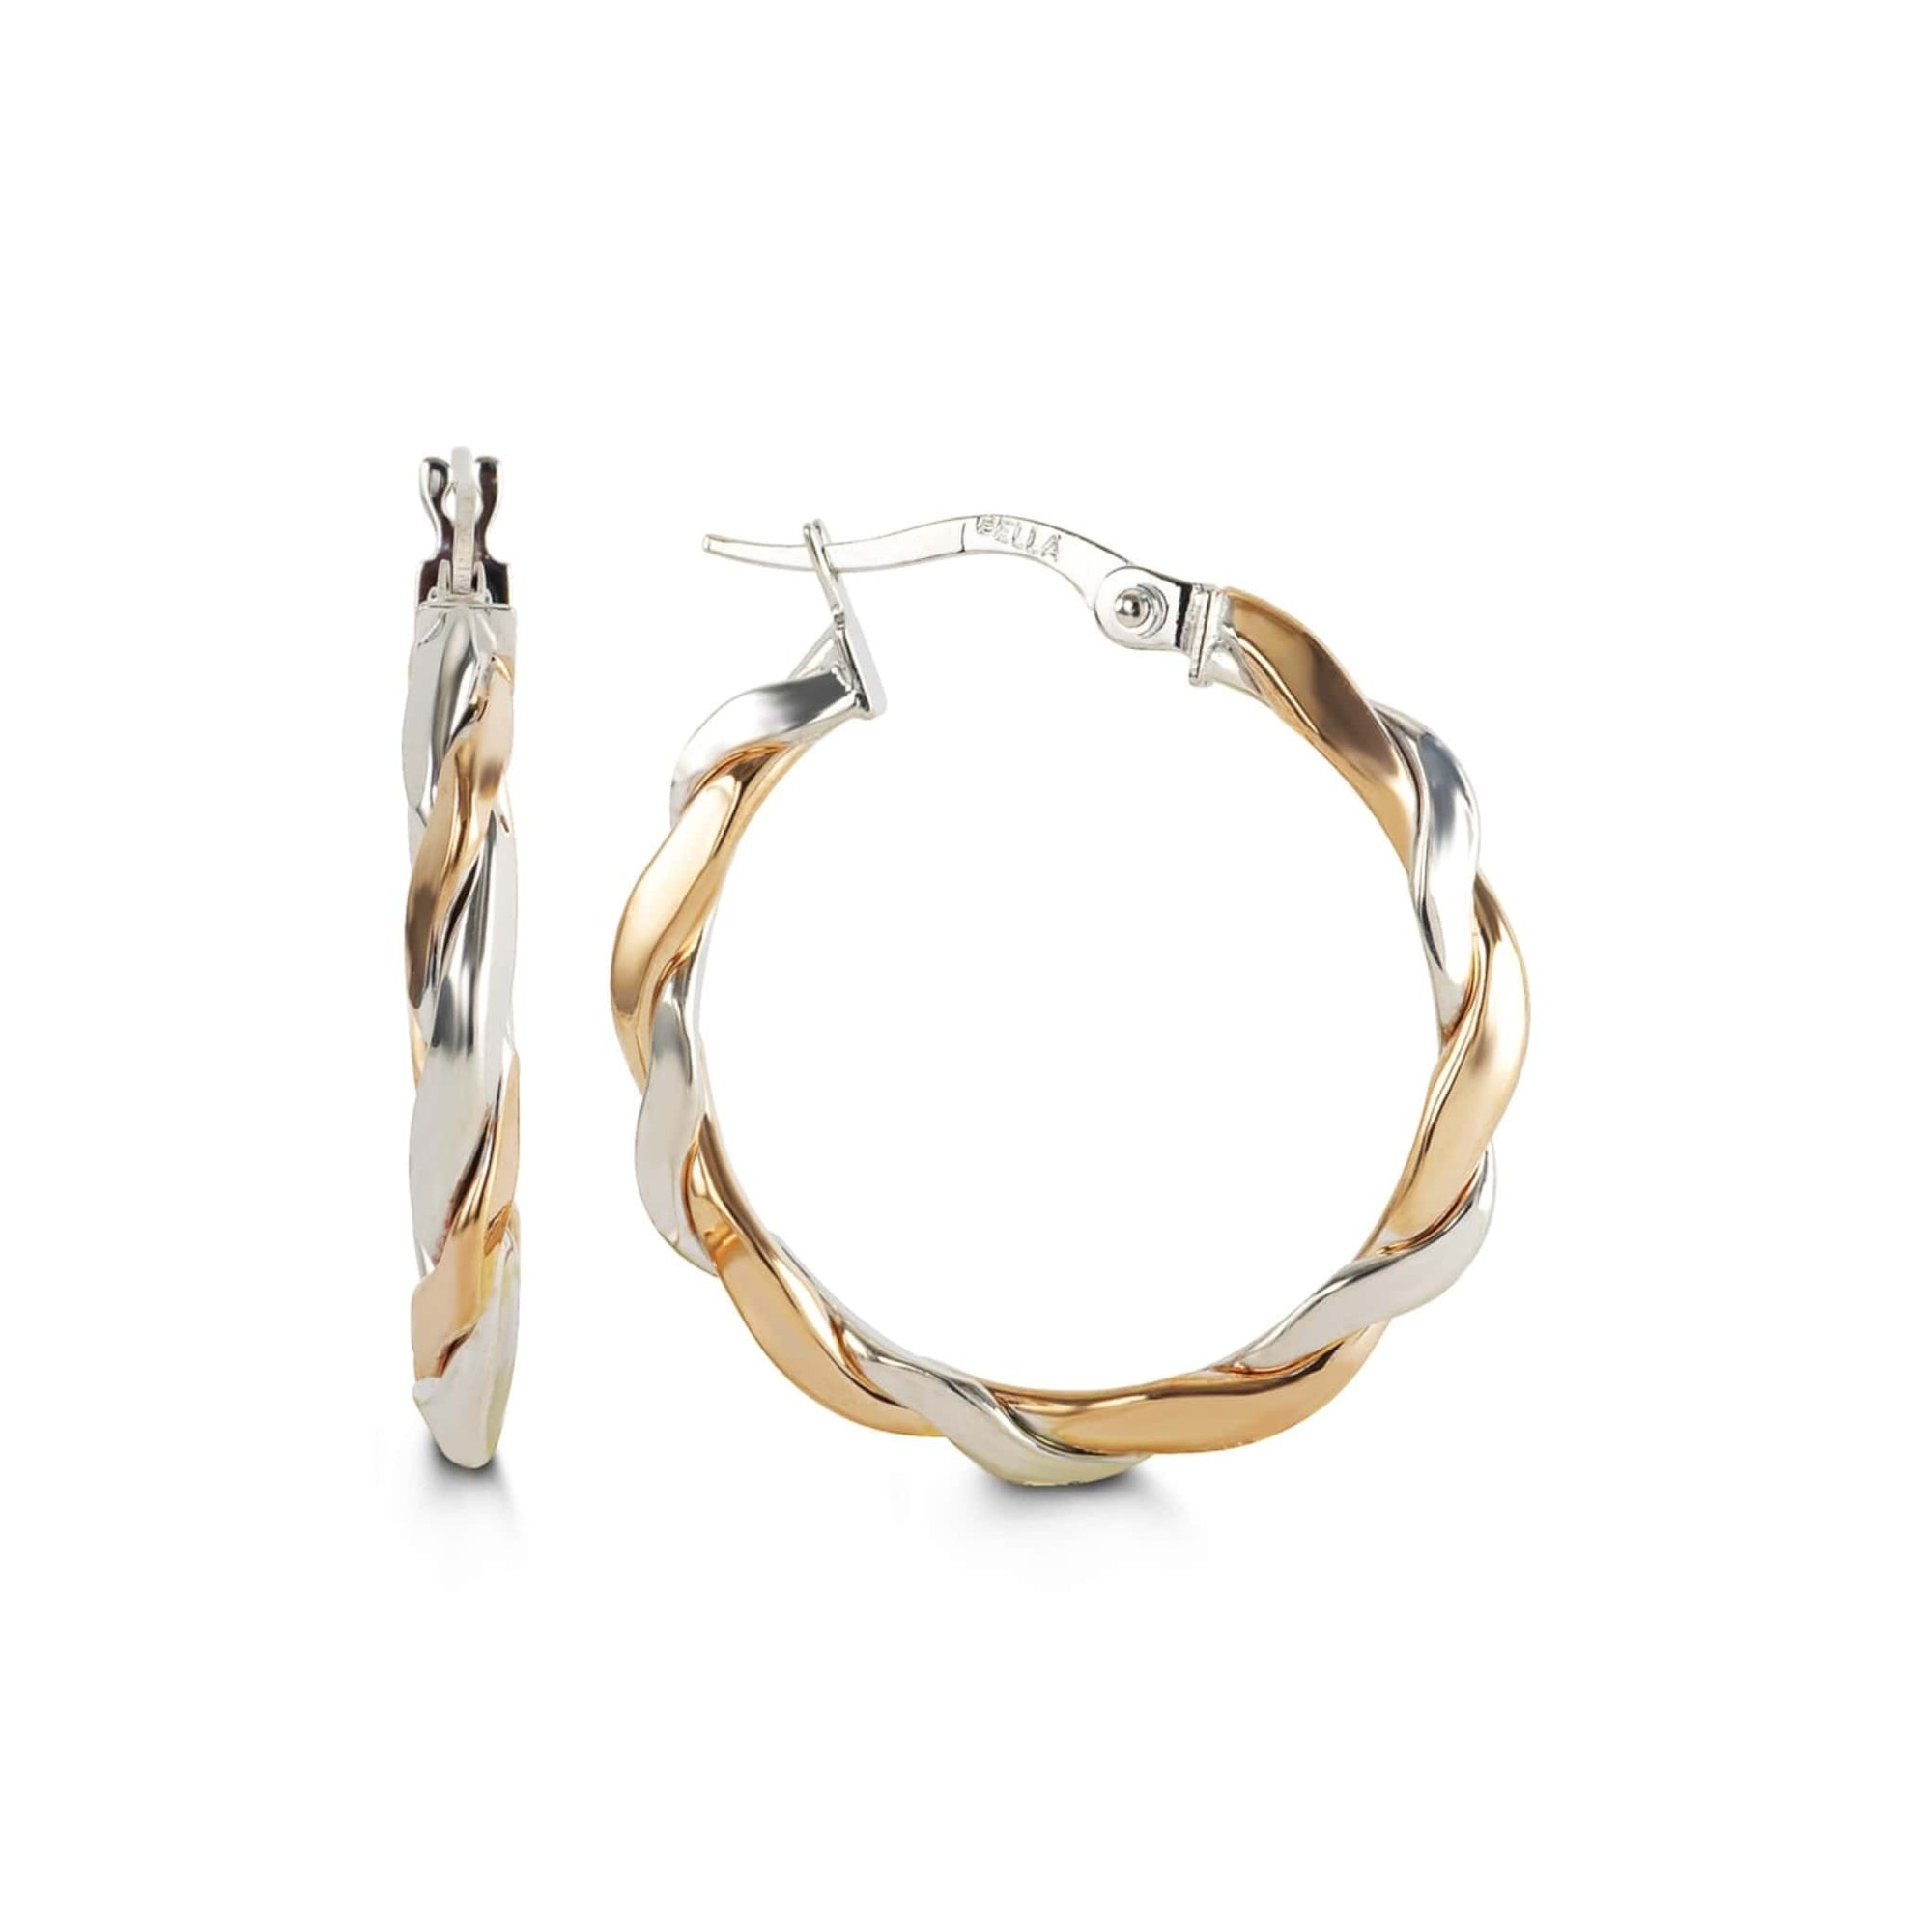 10K Rose & White Gold Twist Hoop Earrings at Arman's Jewellers